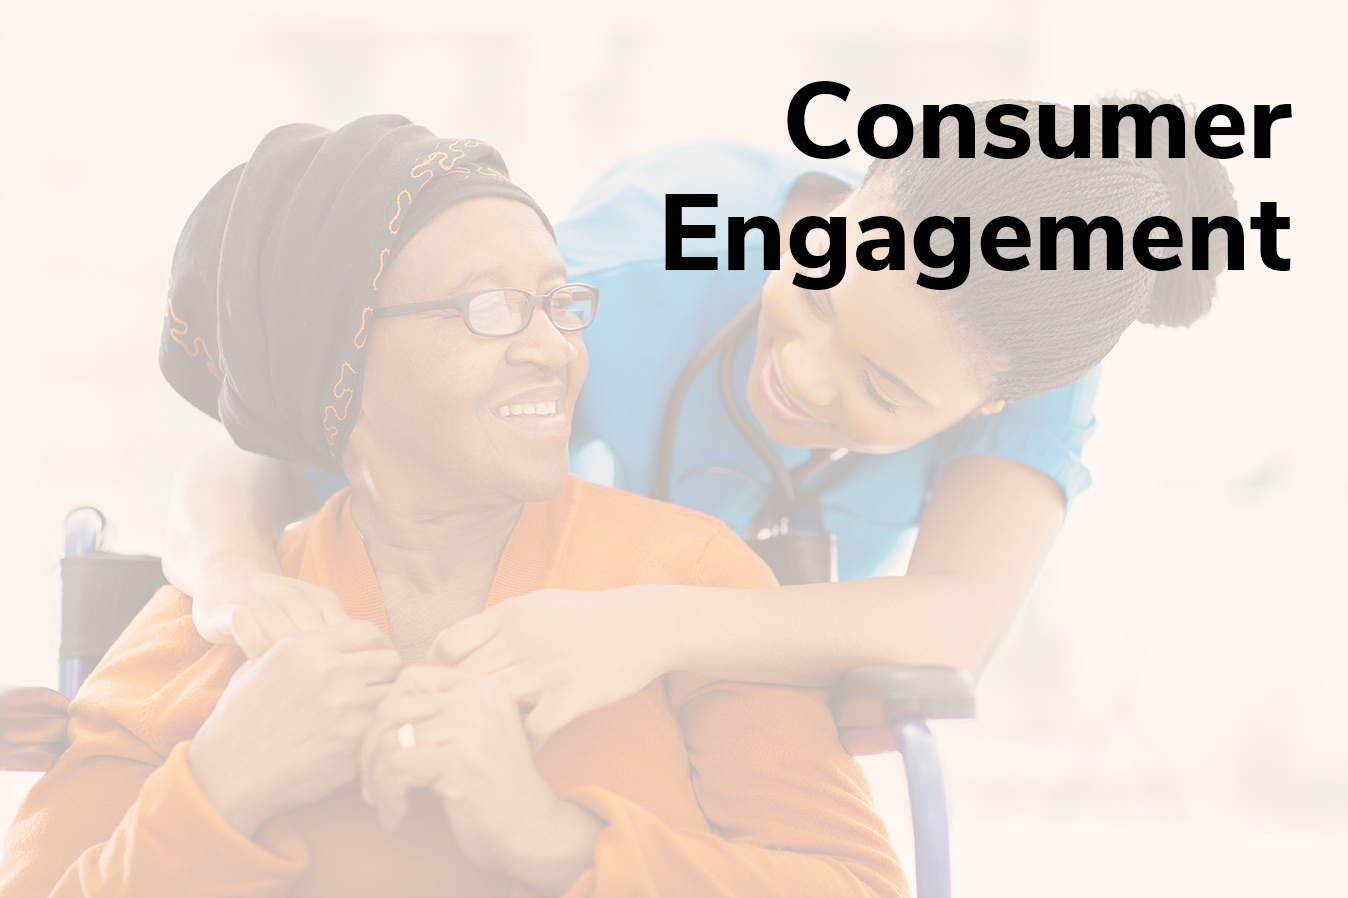 Consumer Engagement Title Frame